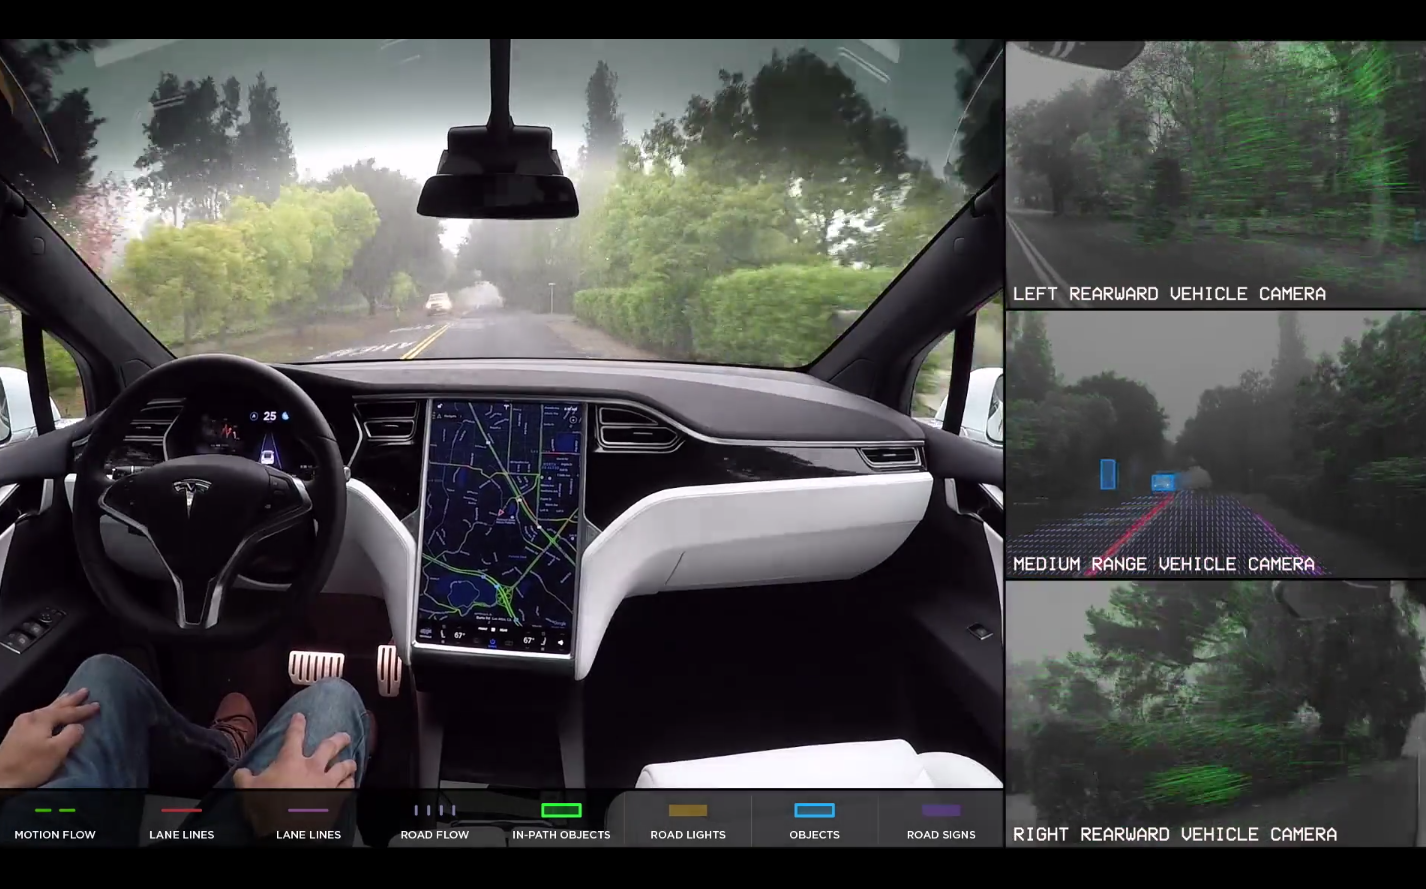 See what Tesla self-driving cars see on the road.